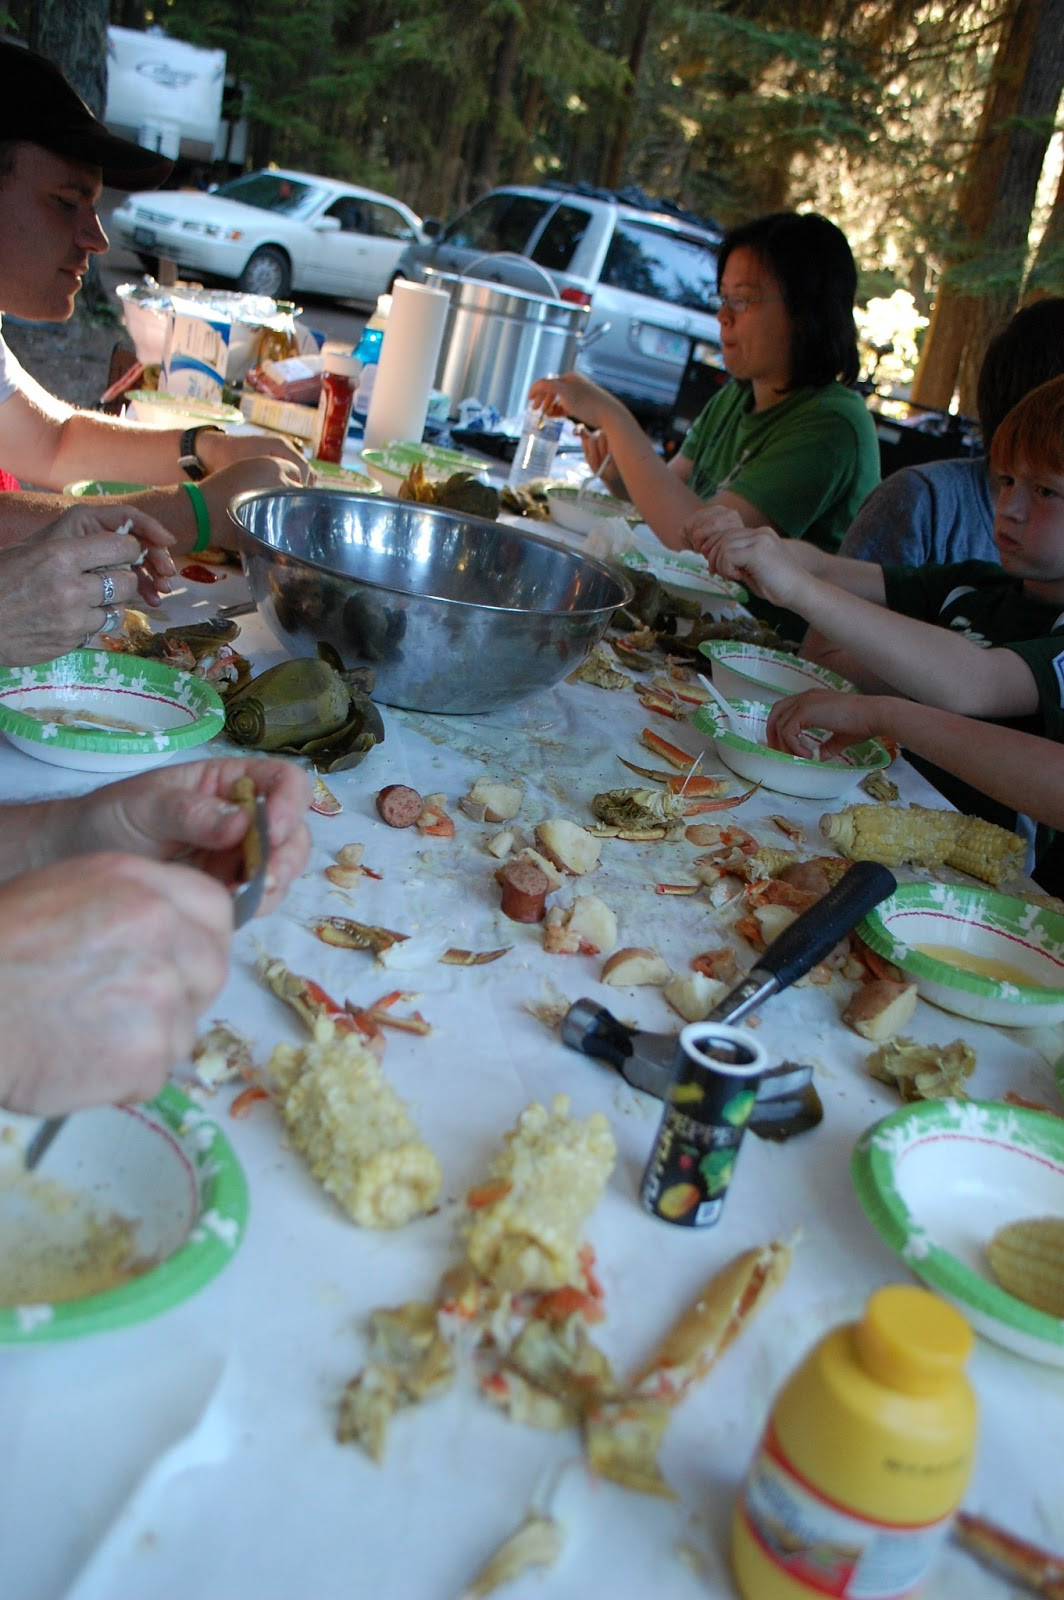 Great Camping Dinners  Toad s Treasures Lifestyle Family Blog by Emily Ashby The